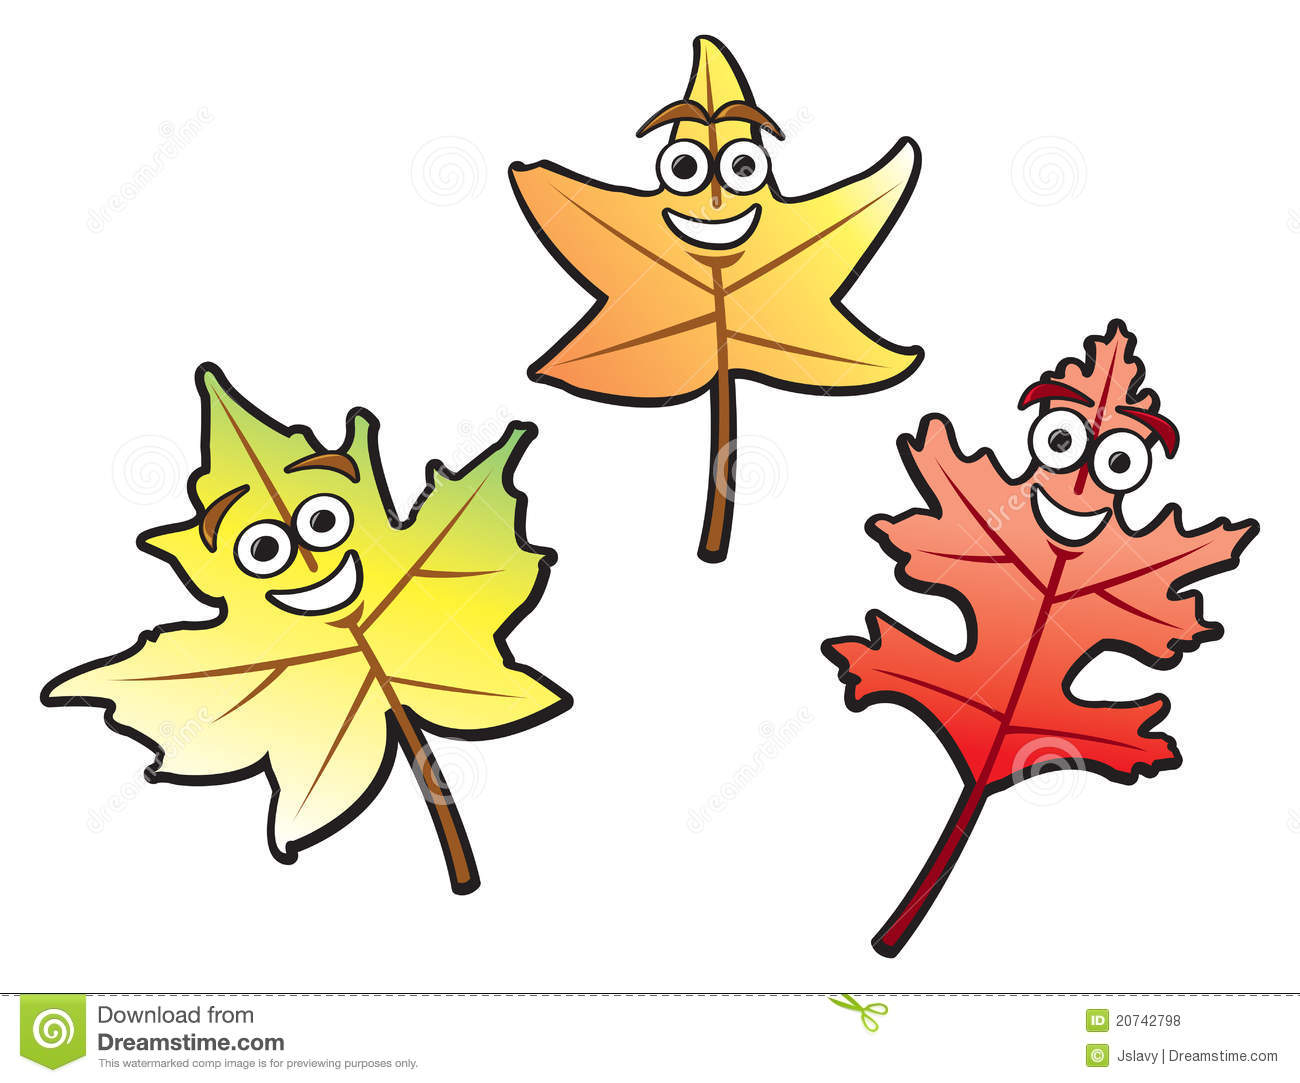 Three autumn leaves of various common types drawn in a fun cartoon